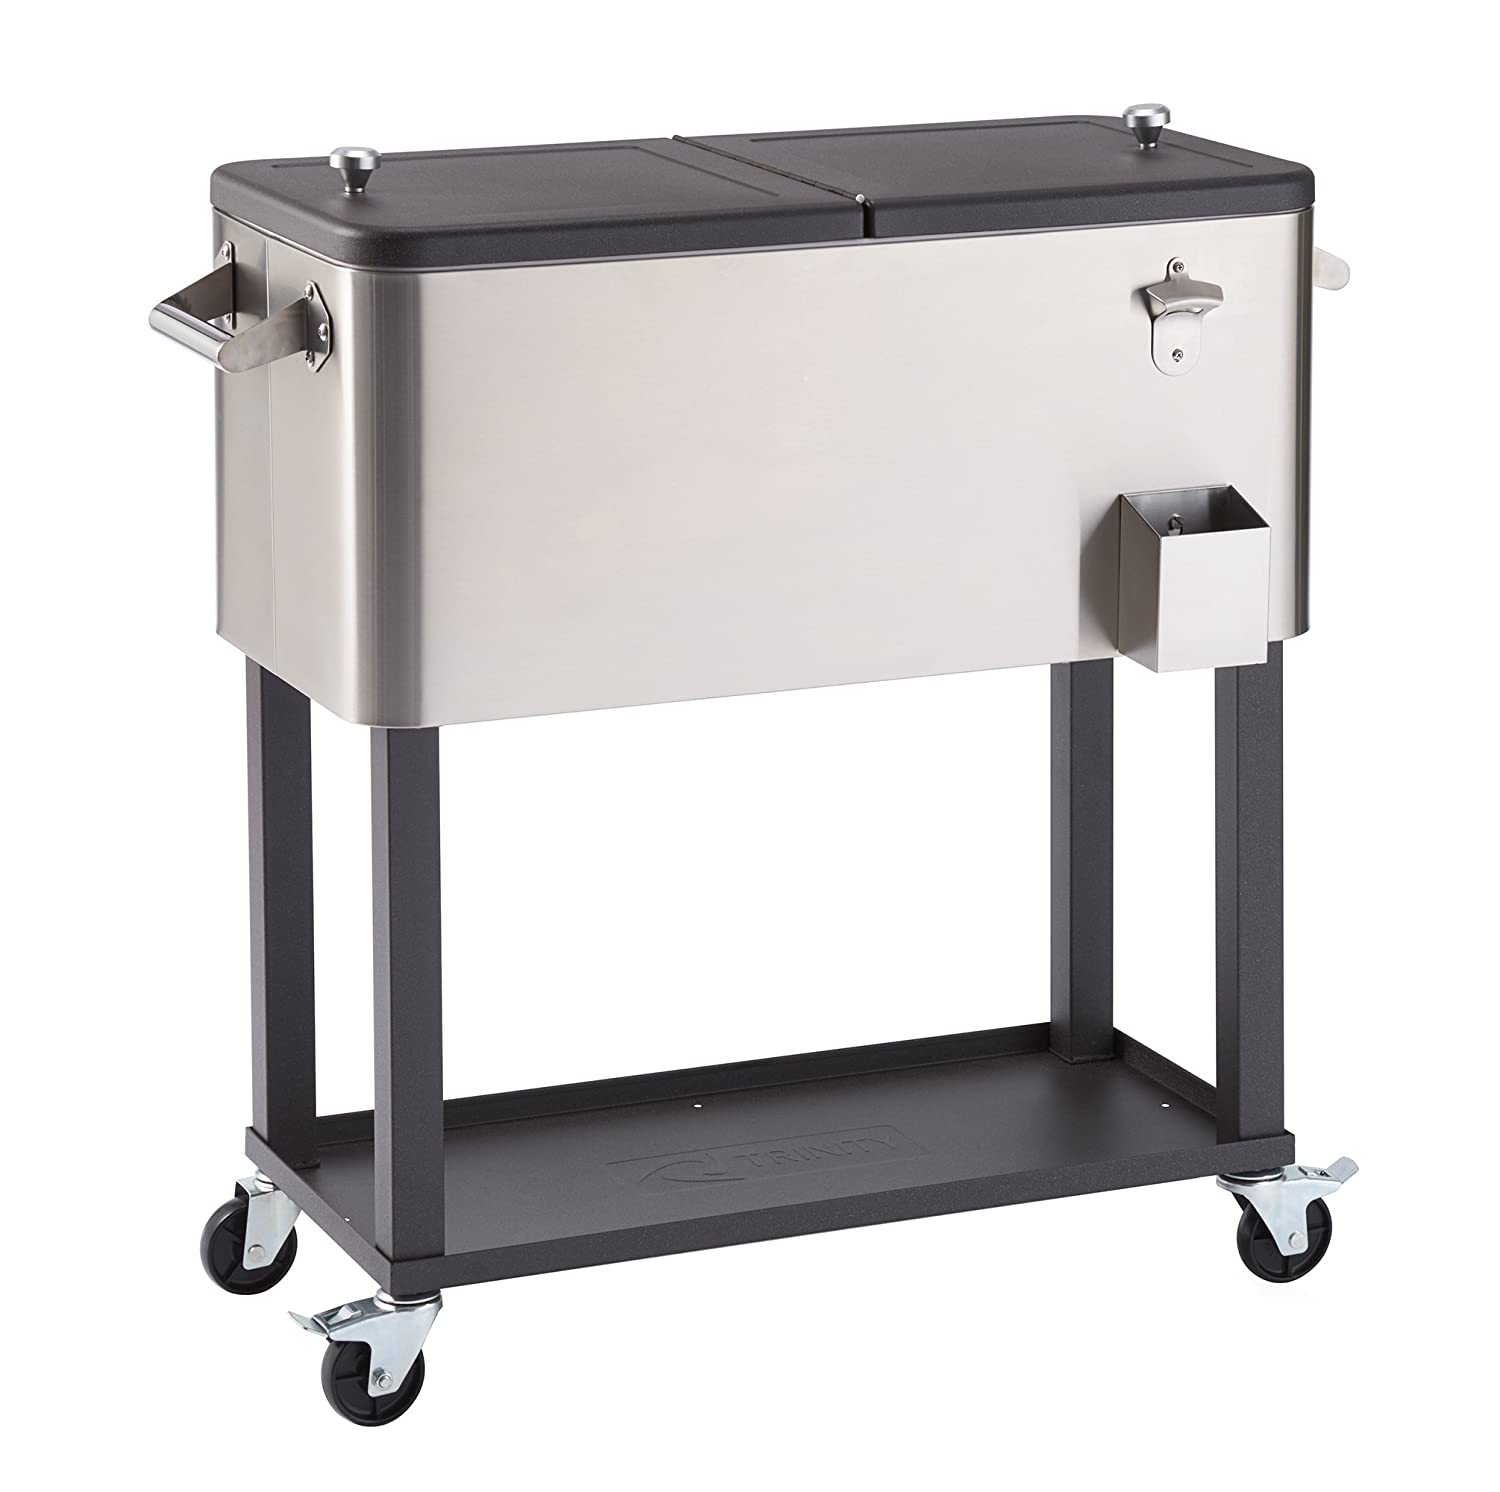 Amazon.com : Trinity TXK-0802 Stainless Steel Cooler with Shelf ...